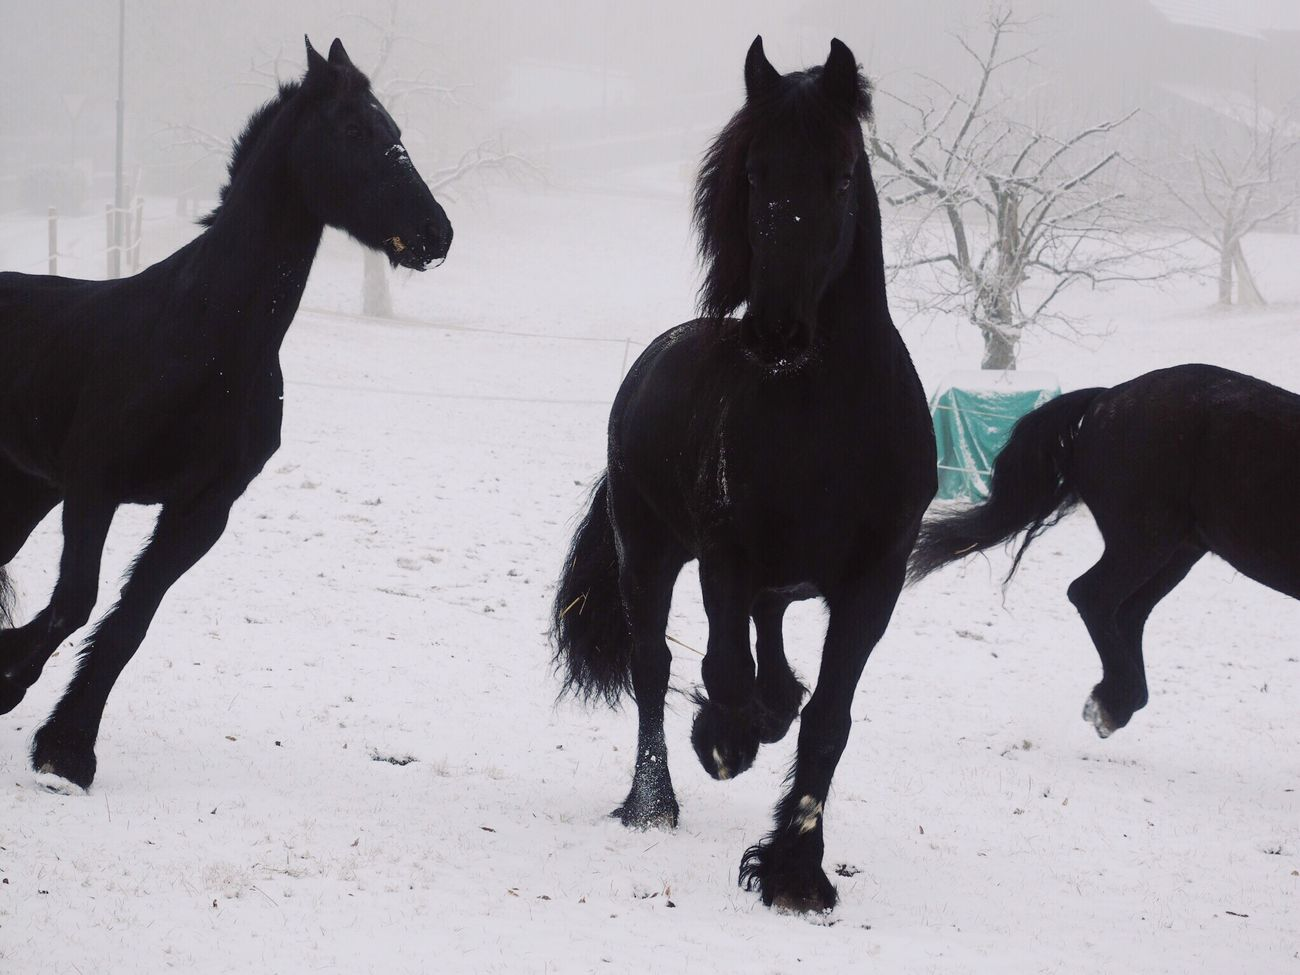 Happy about the first snow of the new year ! Domestic Animals Animal Themes Mammal Horse Black Color Winter Snow Cold Temperature Outdoors Nature at Gempen,switzerland